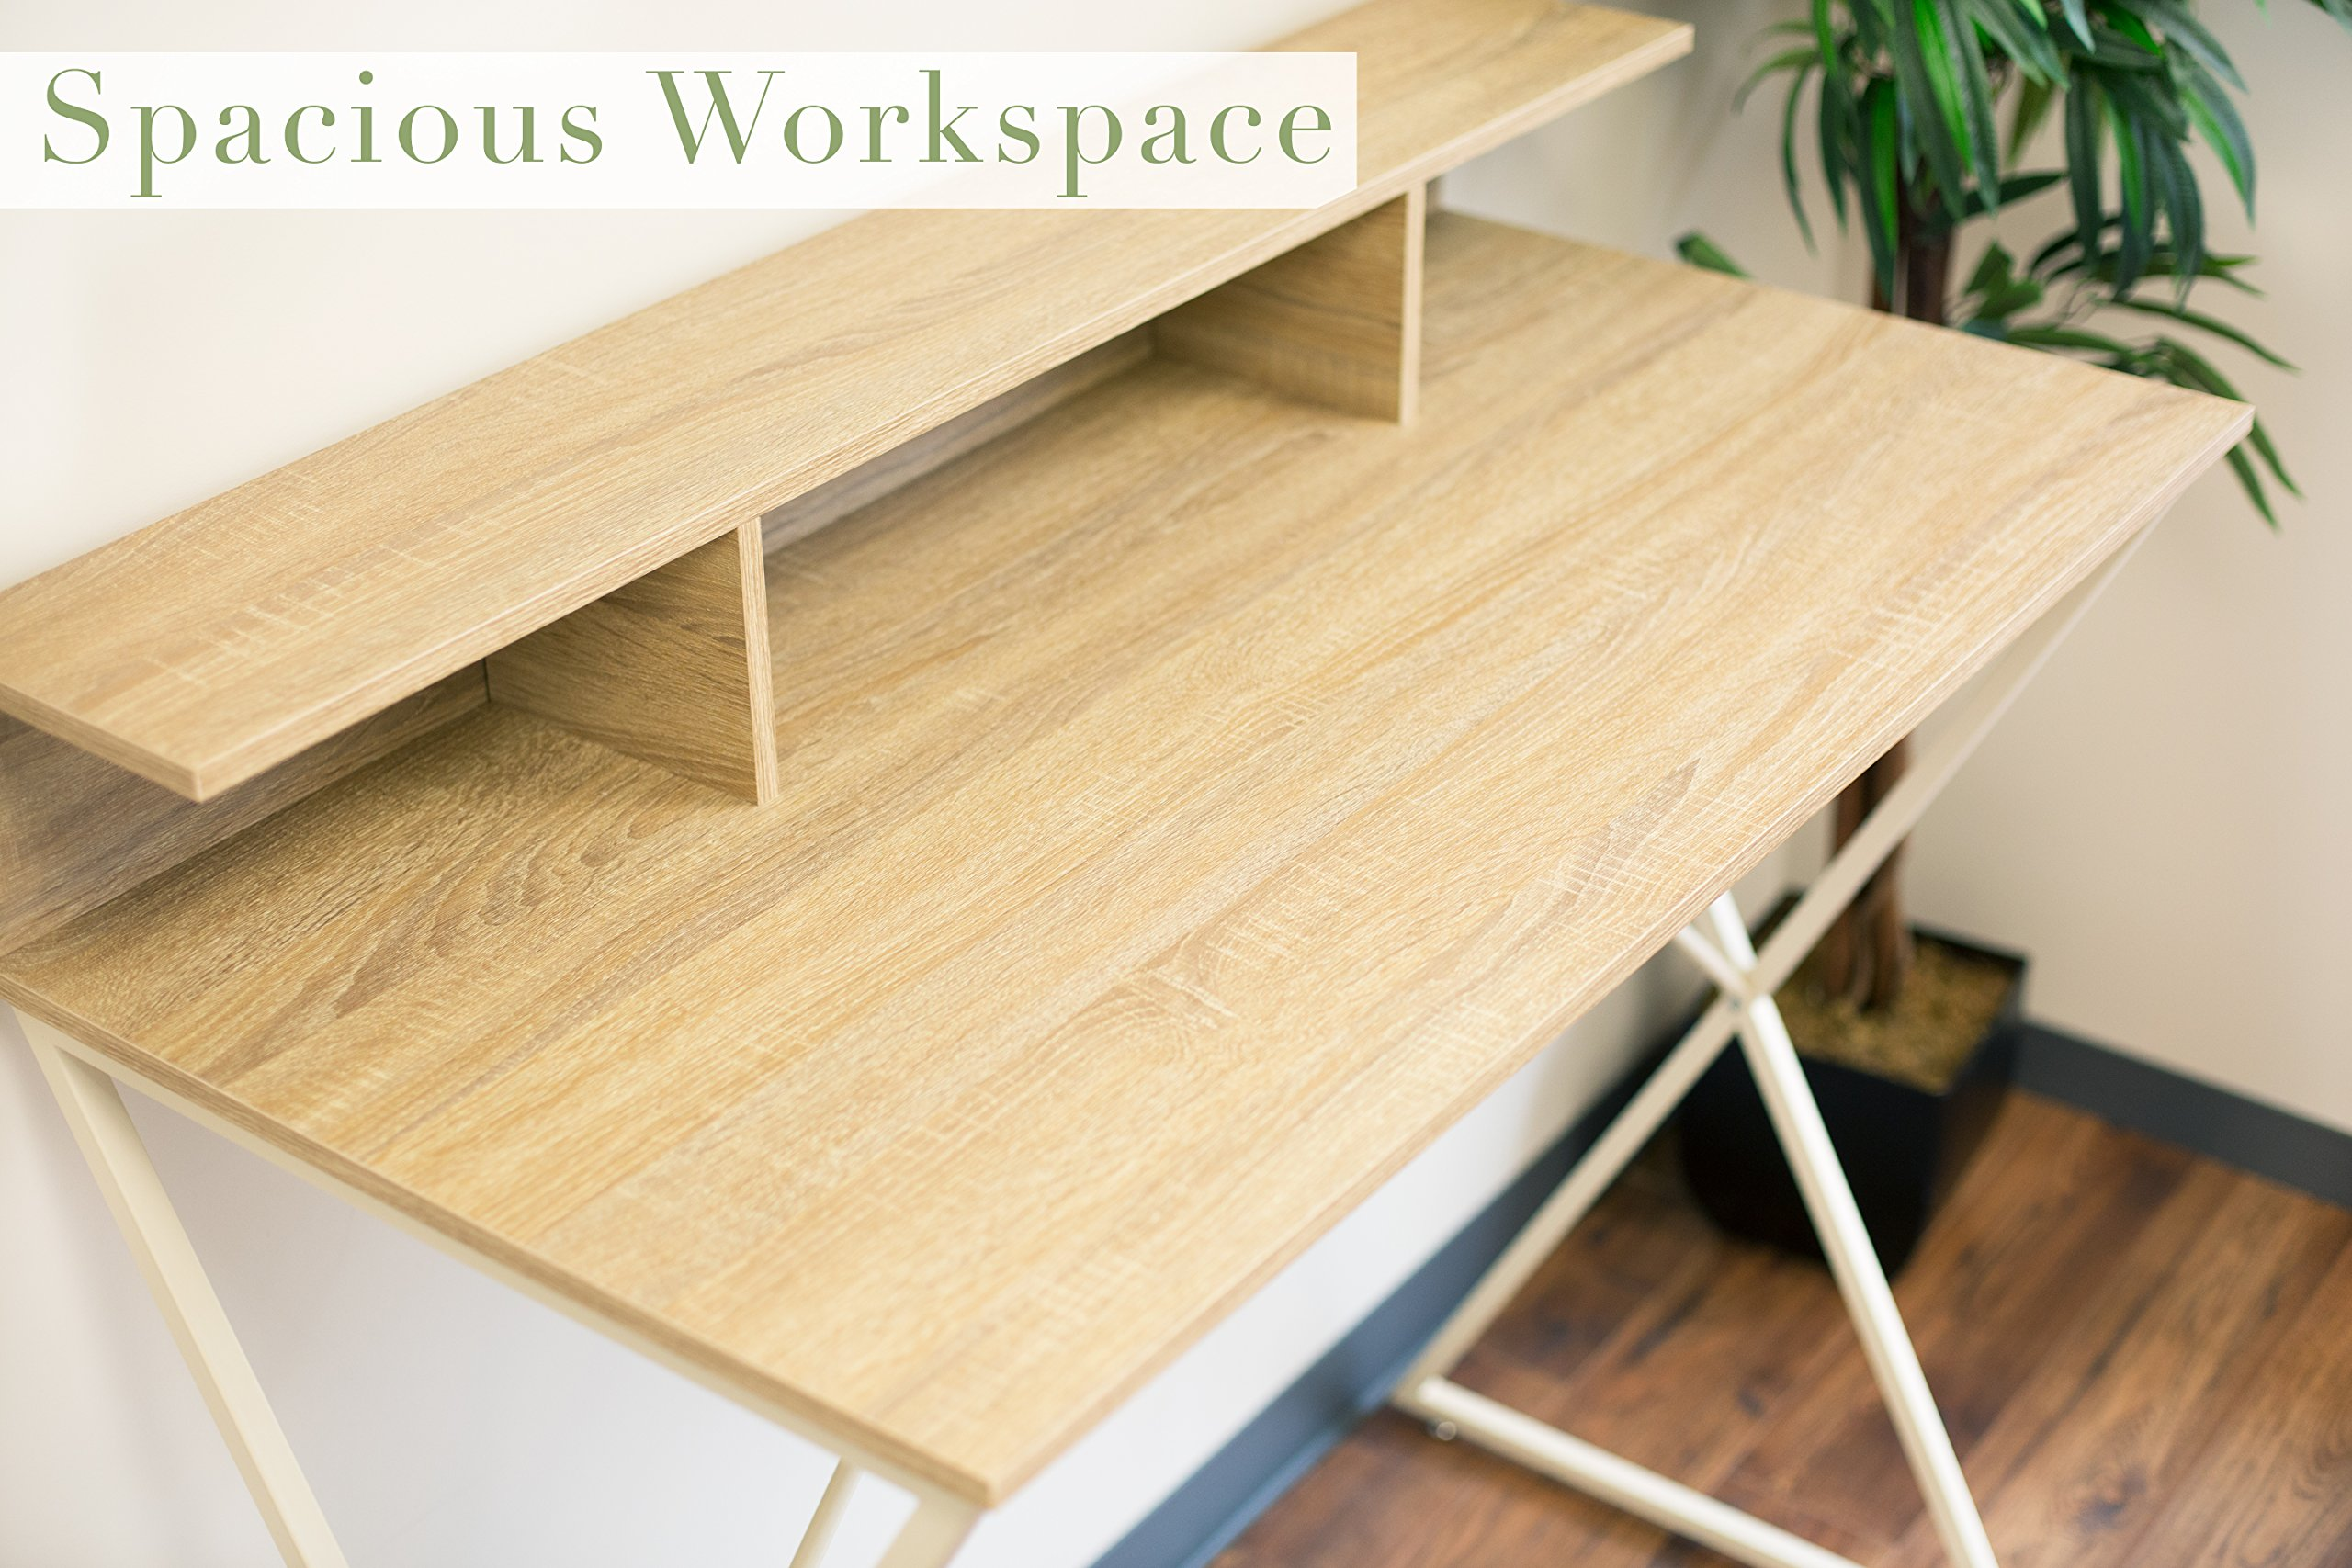 Joy Desk by Stand Steady - Modern Home Office Standing Desk Workstation with Storage Cubbies! - 47.5'' x 41.5'' by Stand Steady (Image #8)